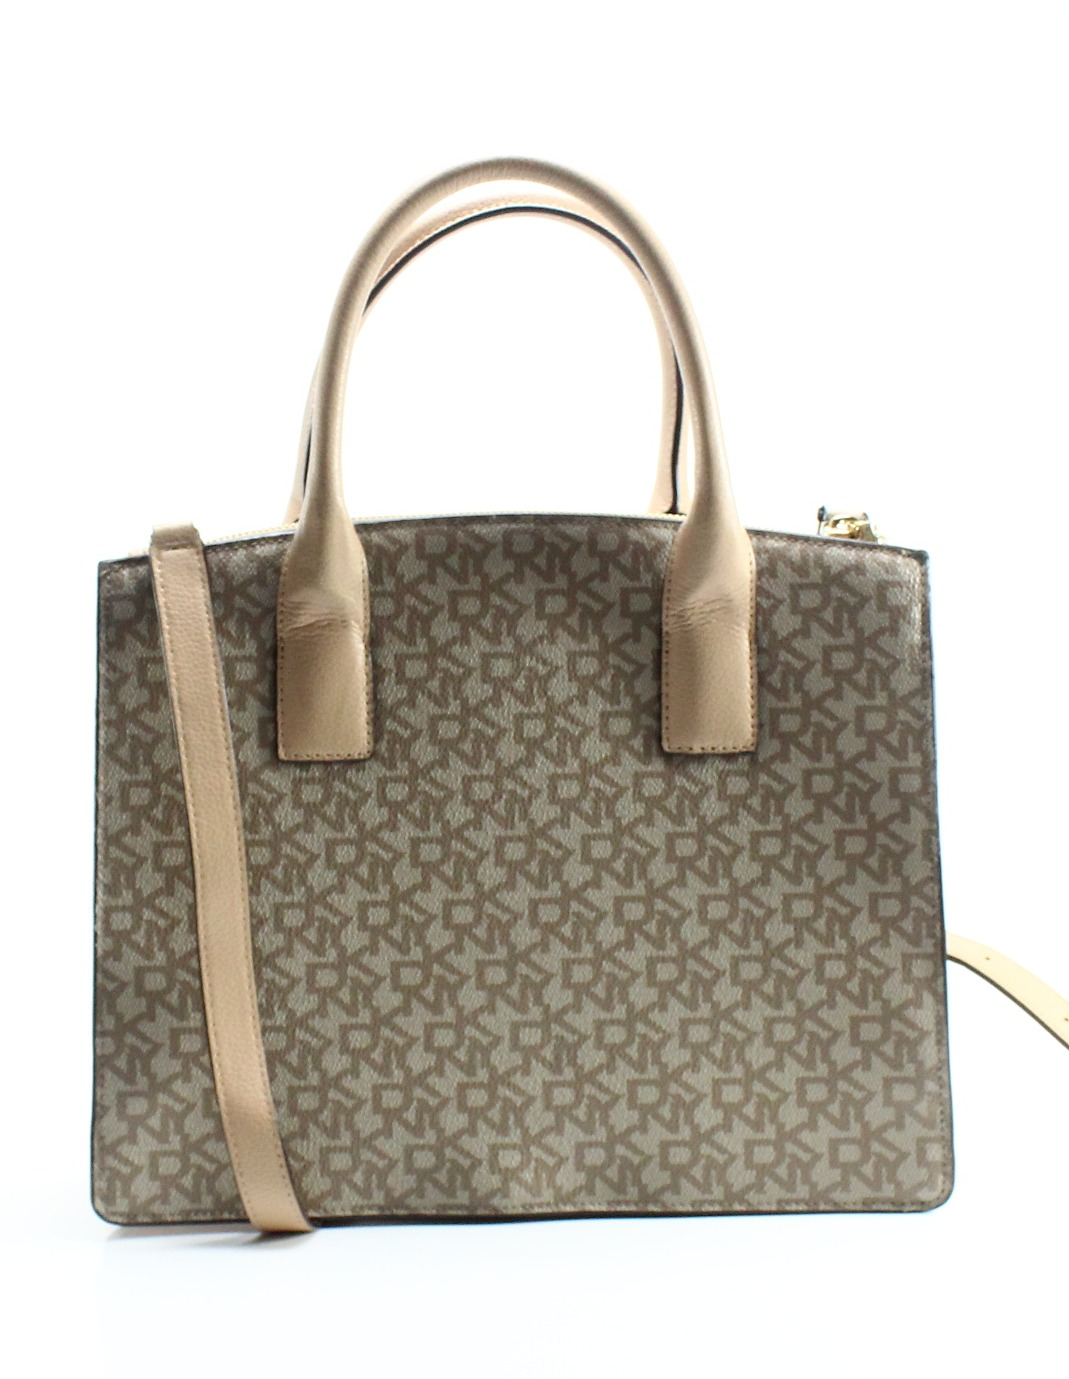 e85aac65cb487 DKNY NEW Mocha Beige Coated Canvas Signature Mott Small Tote Bag ...